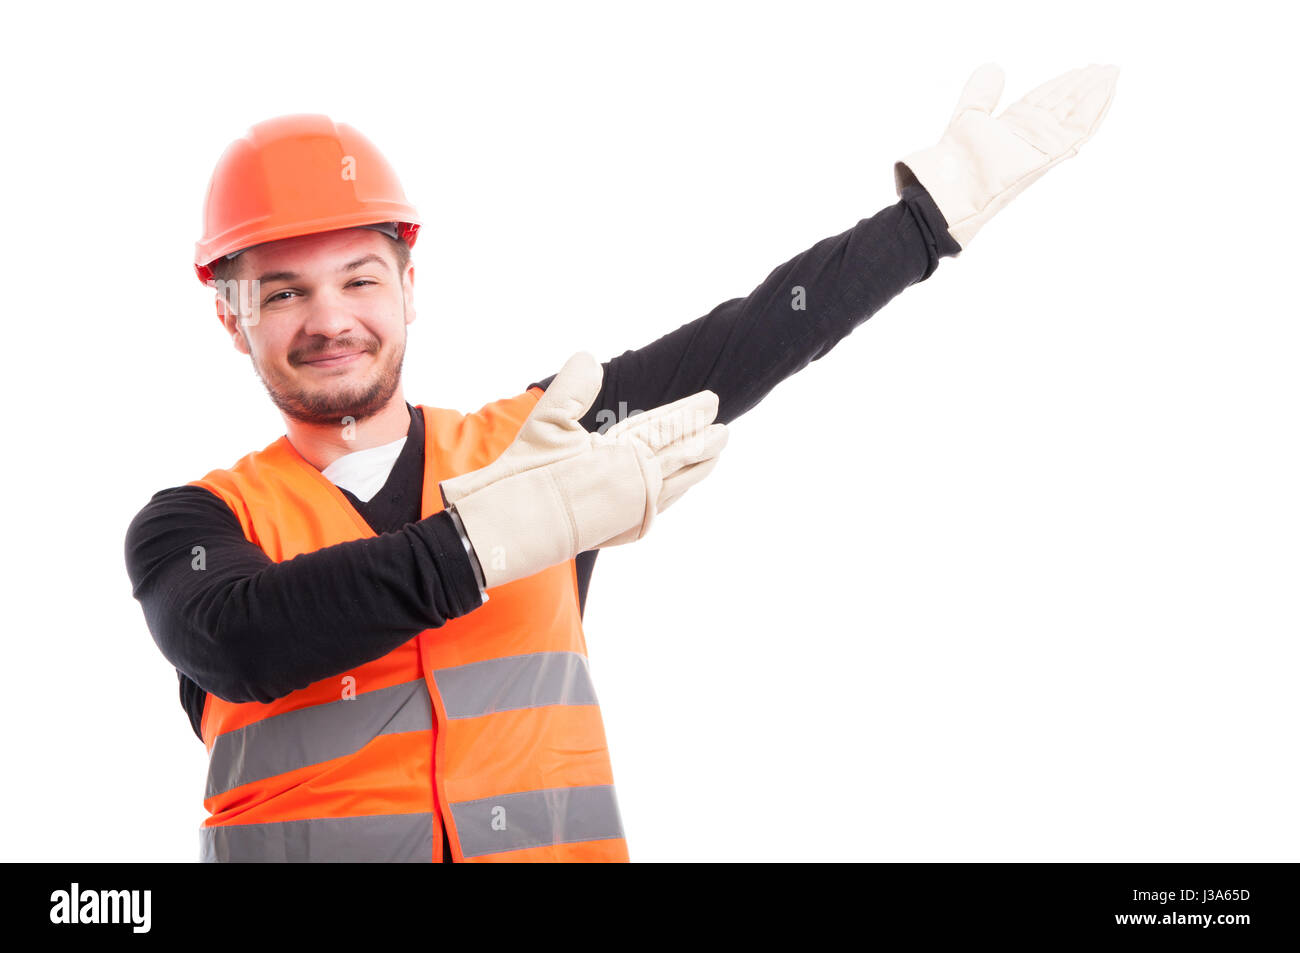 Architect with helmet showing something upwards isolated on white studio background - Stock Image